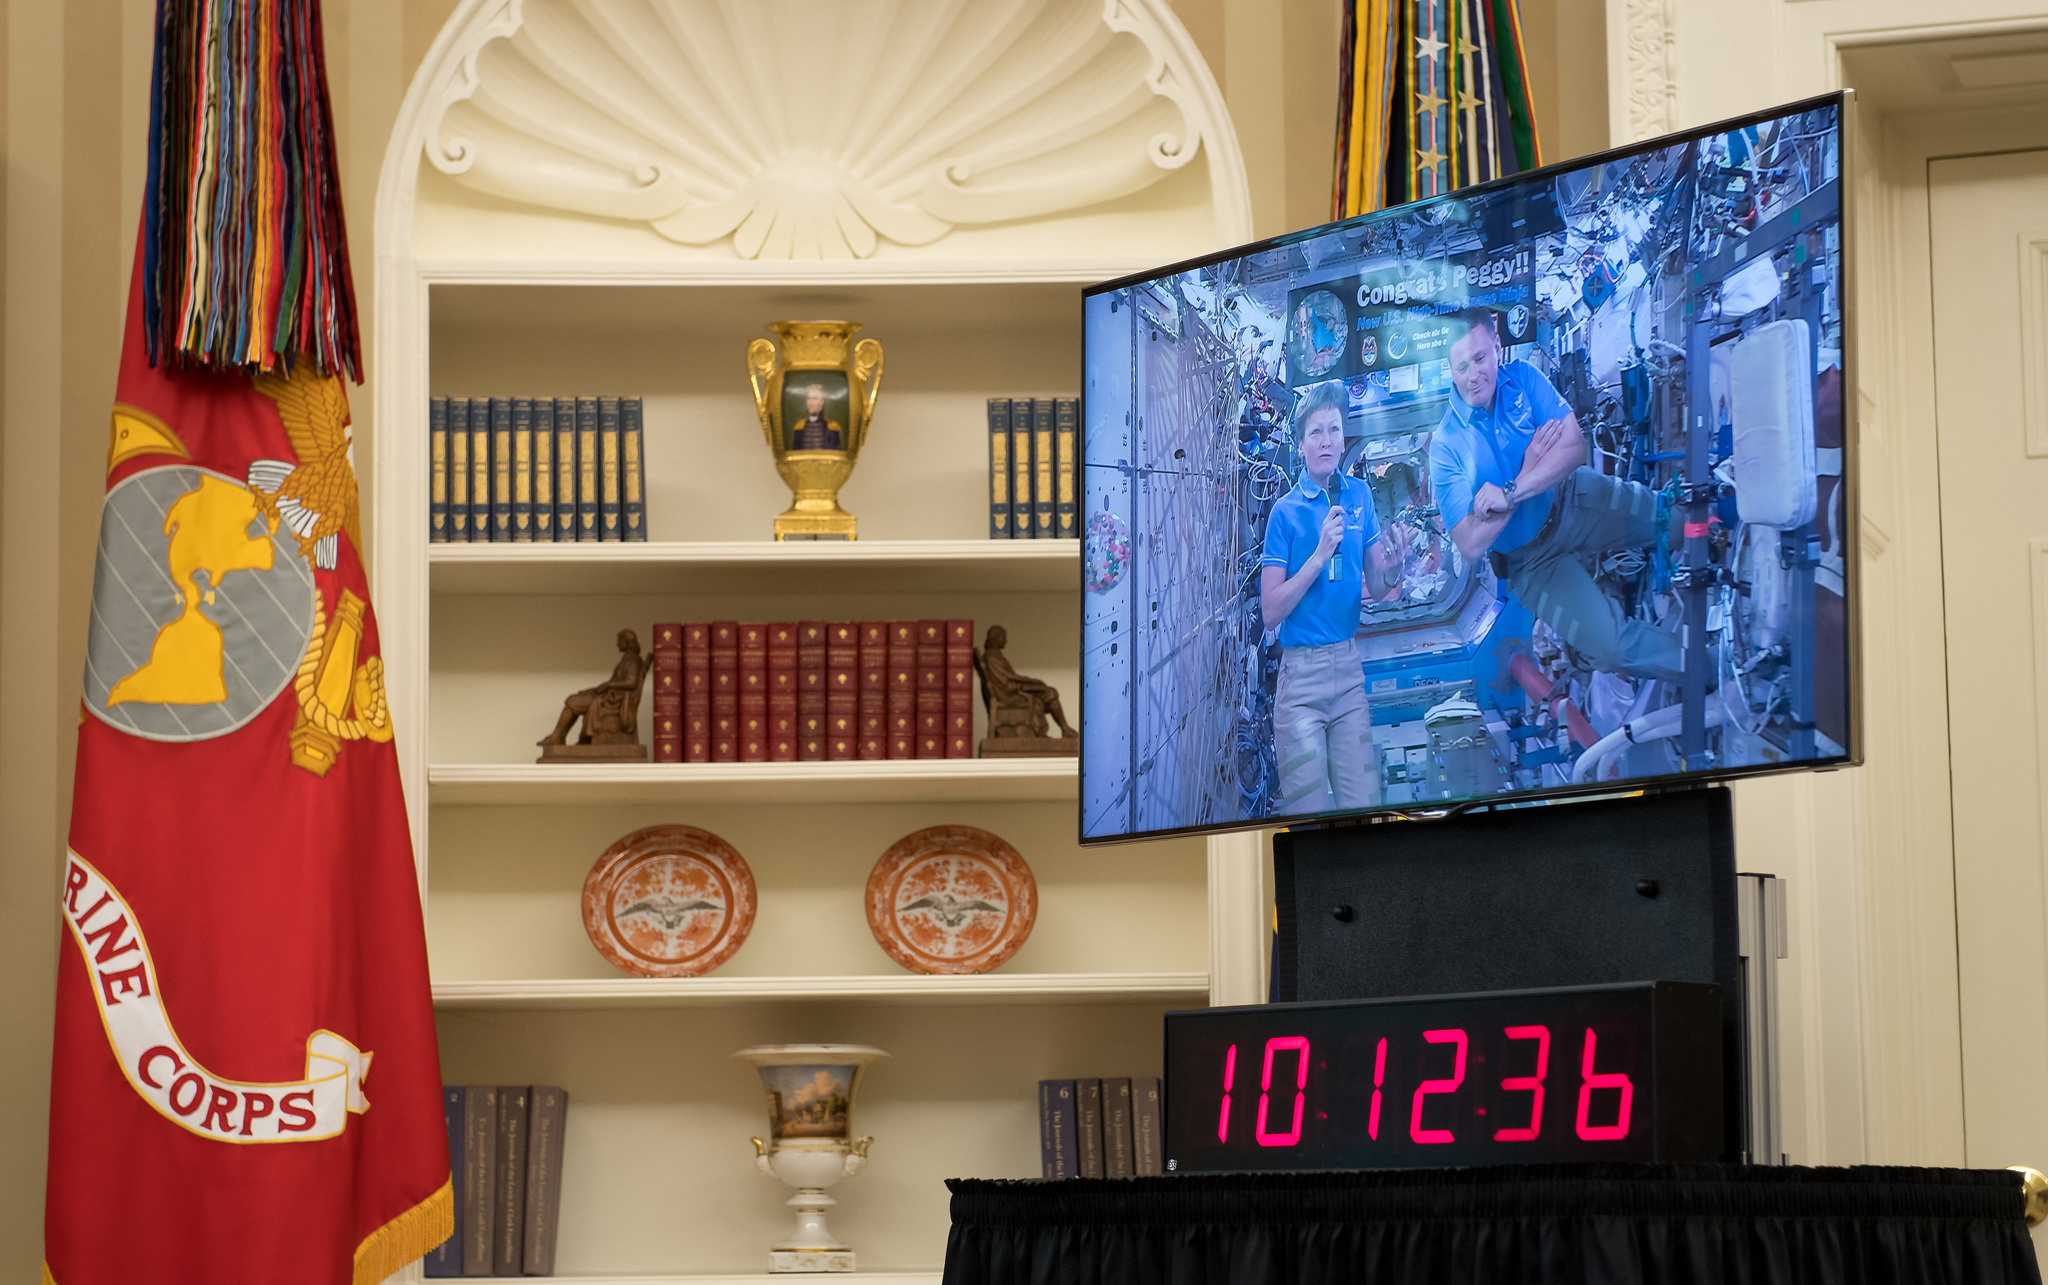 The president watched Whitson and Fischer via a live stream into the Oval Office. Photo Credit: Bill Ingalls / NASA